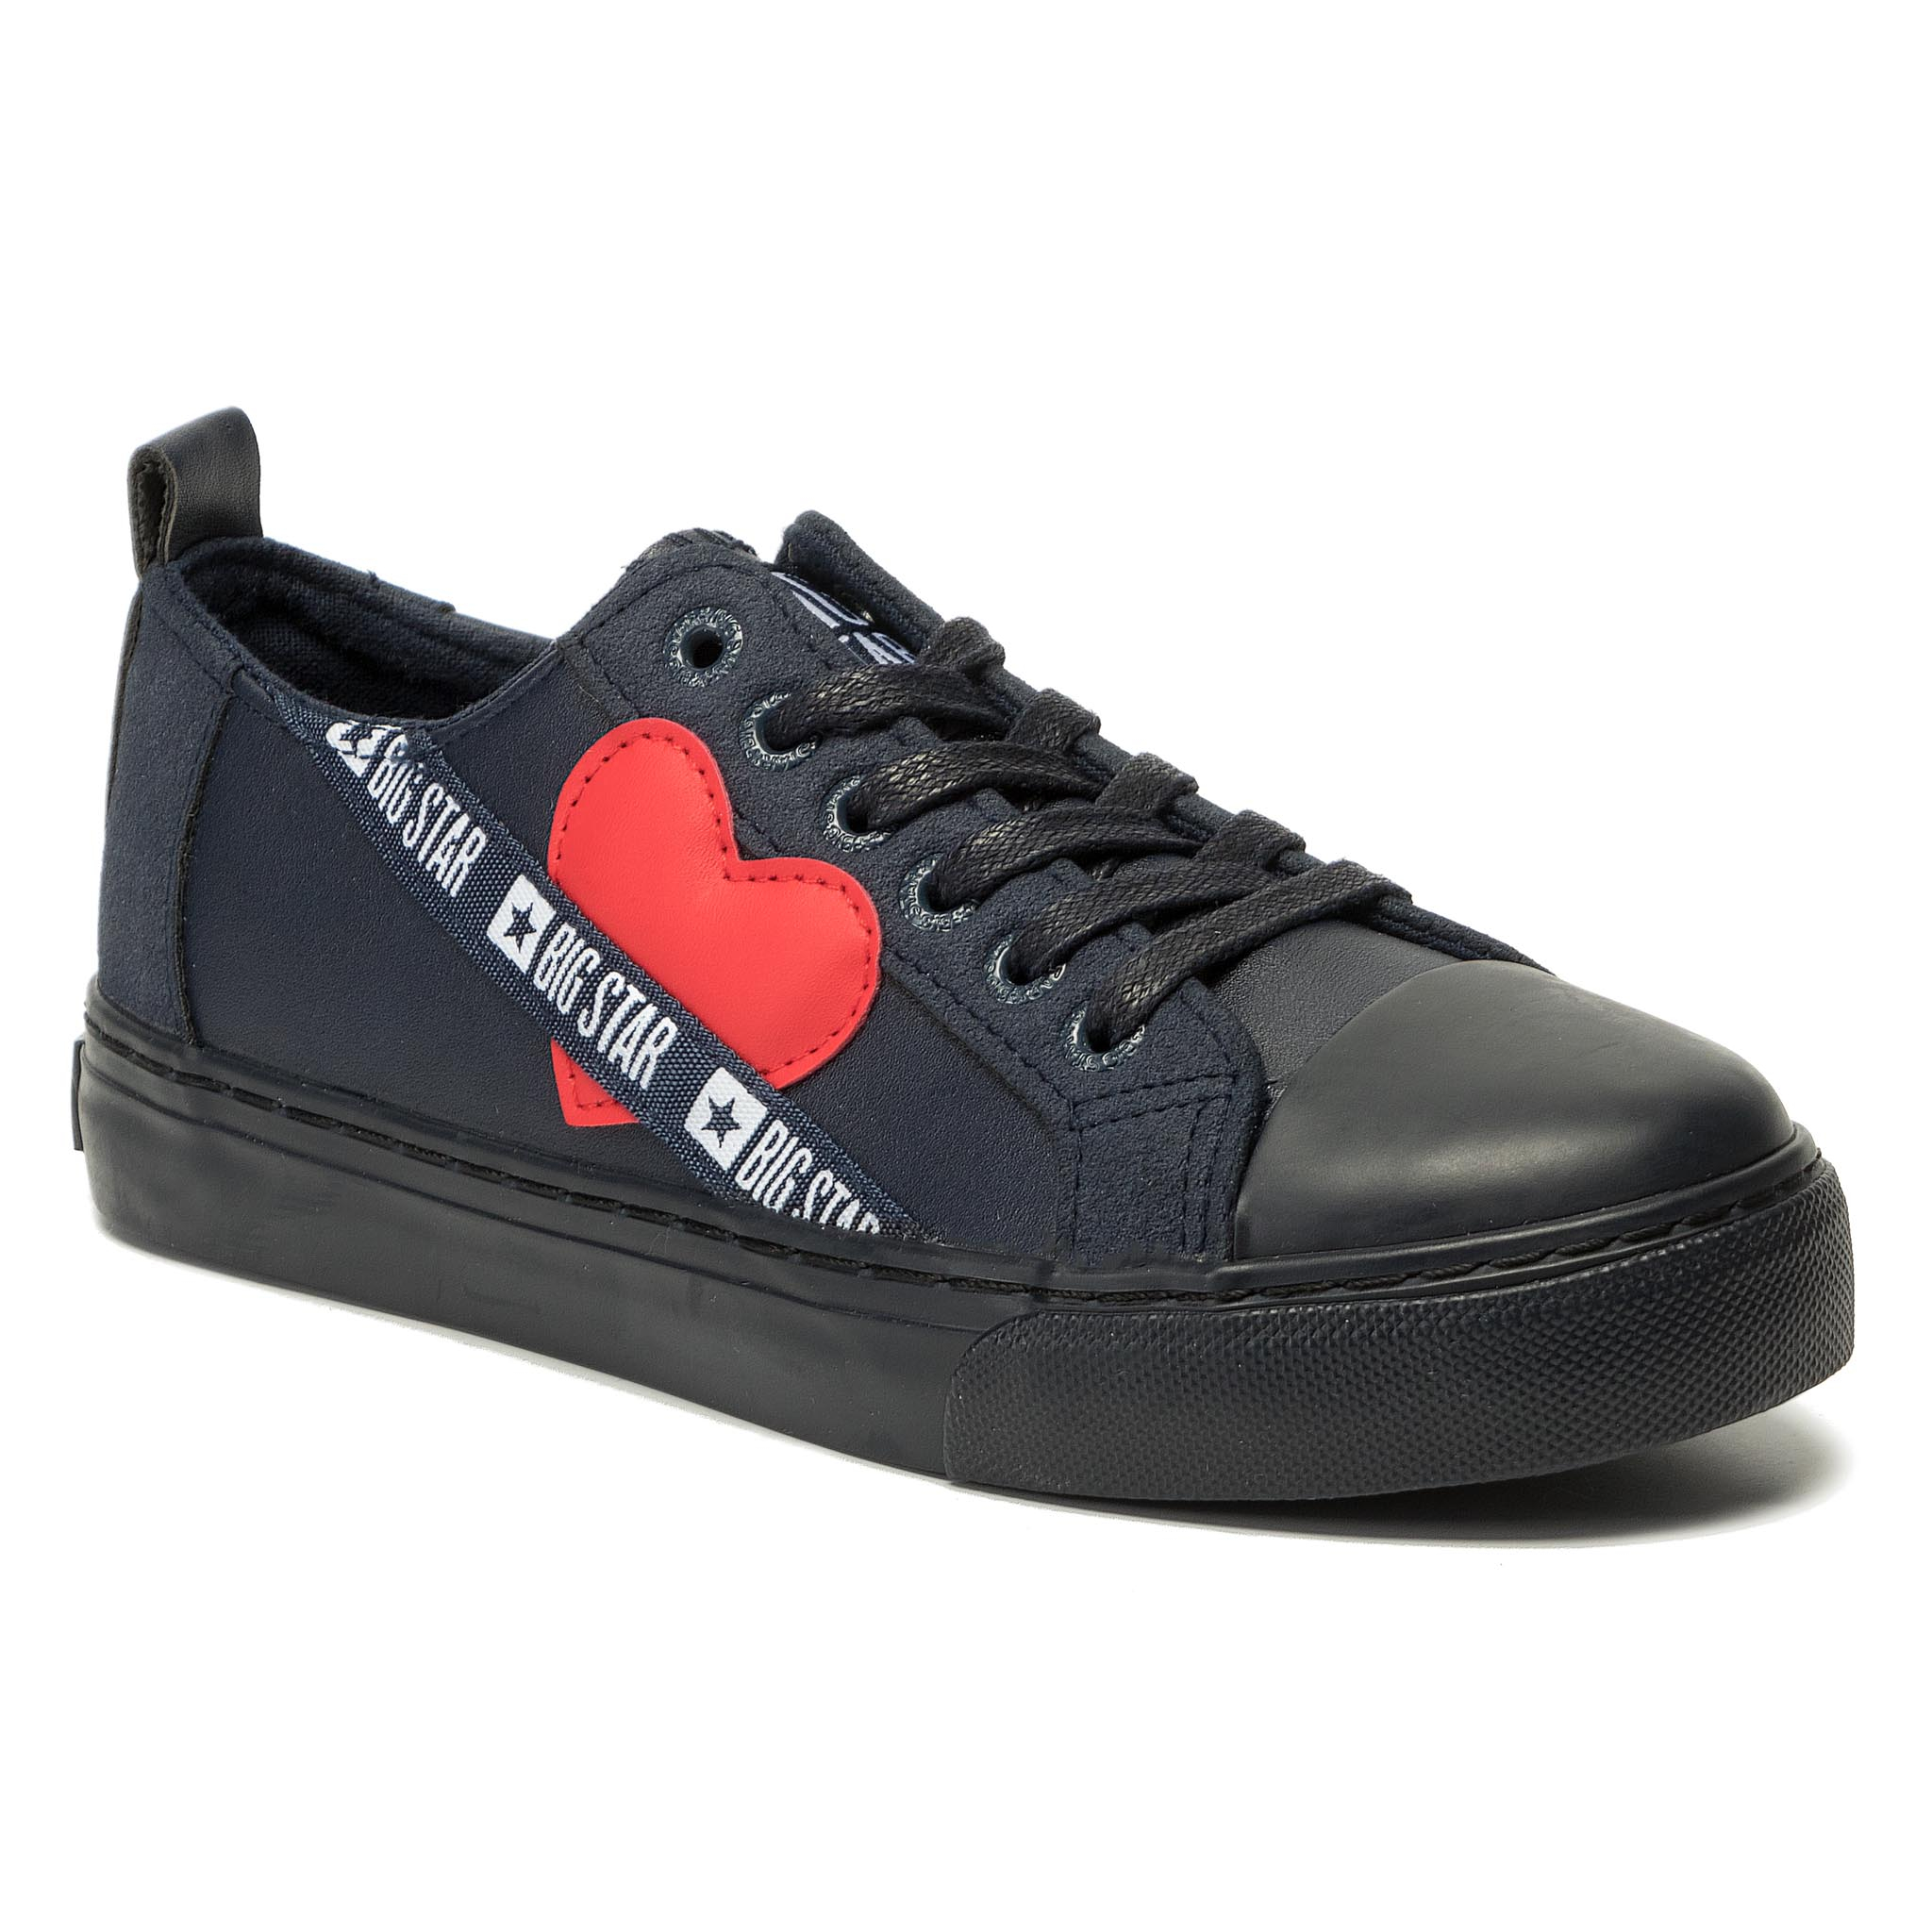 Teniși Big Star - Ee274258 Navy/Red imagine epantofi.ro 2021